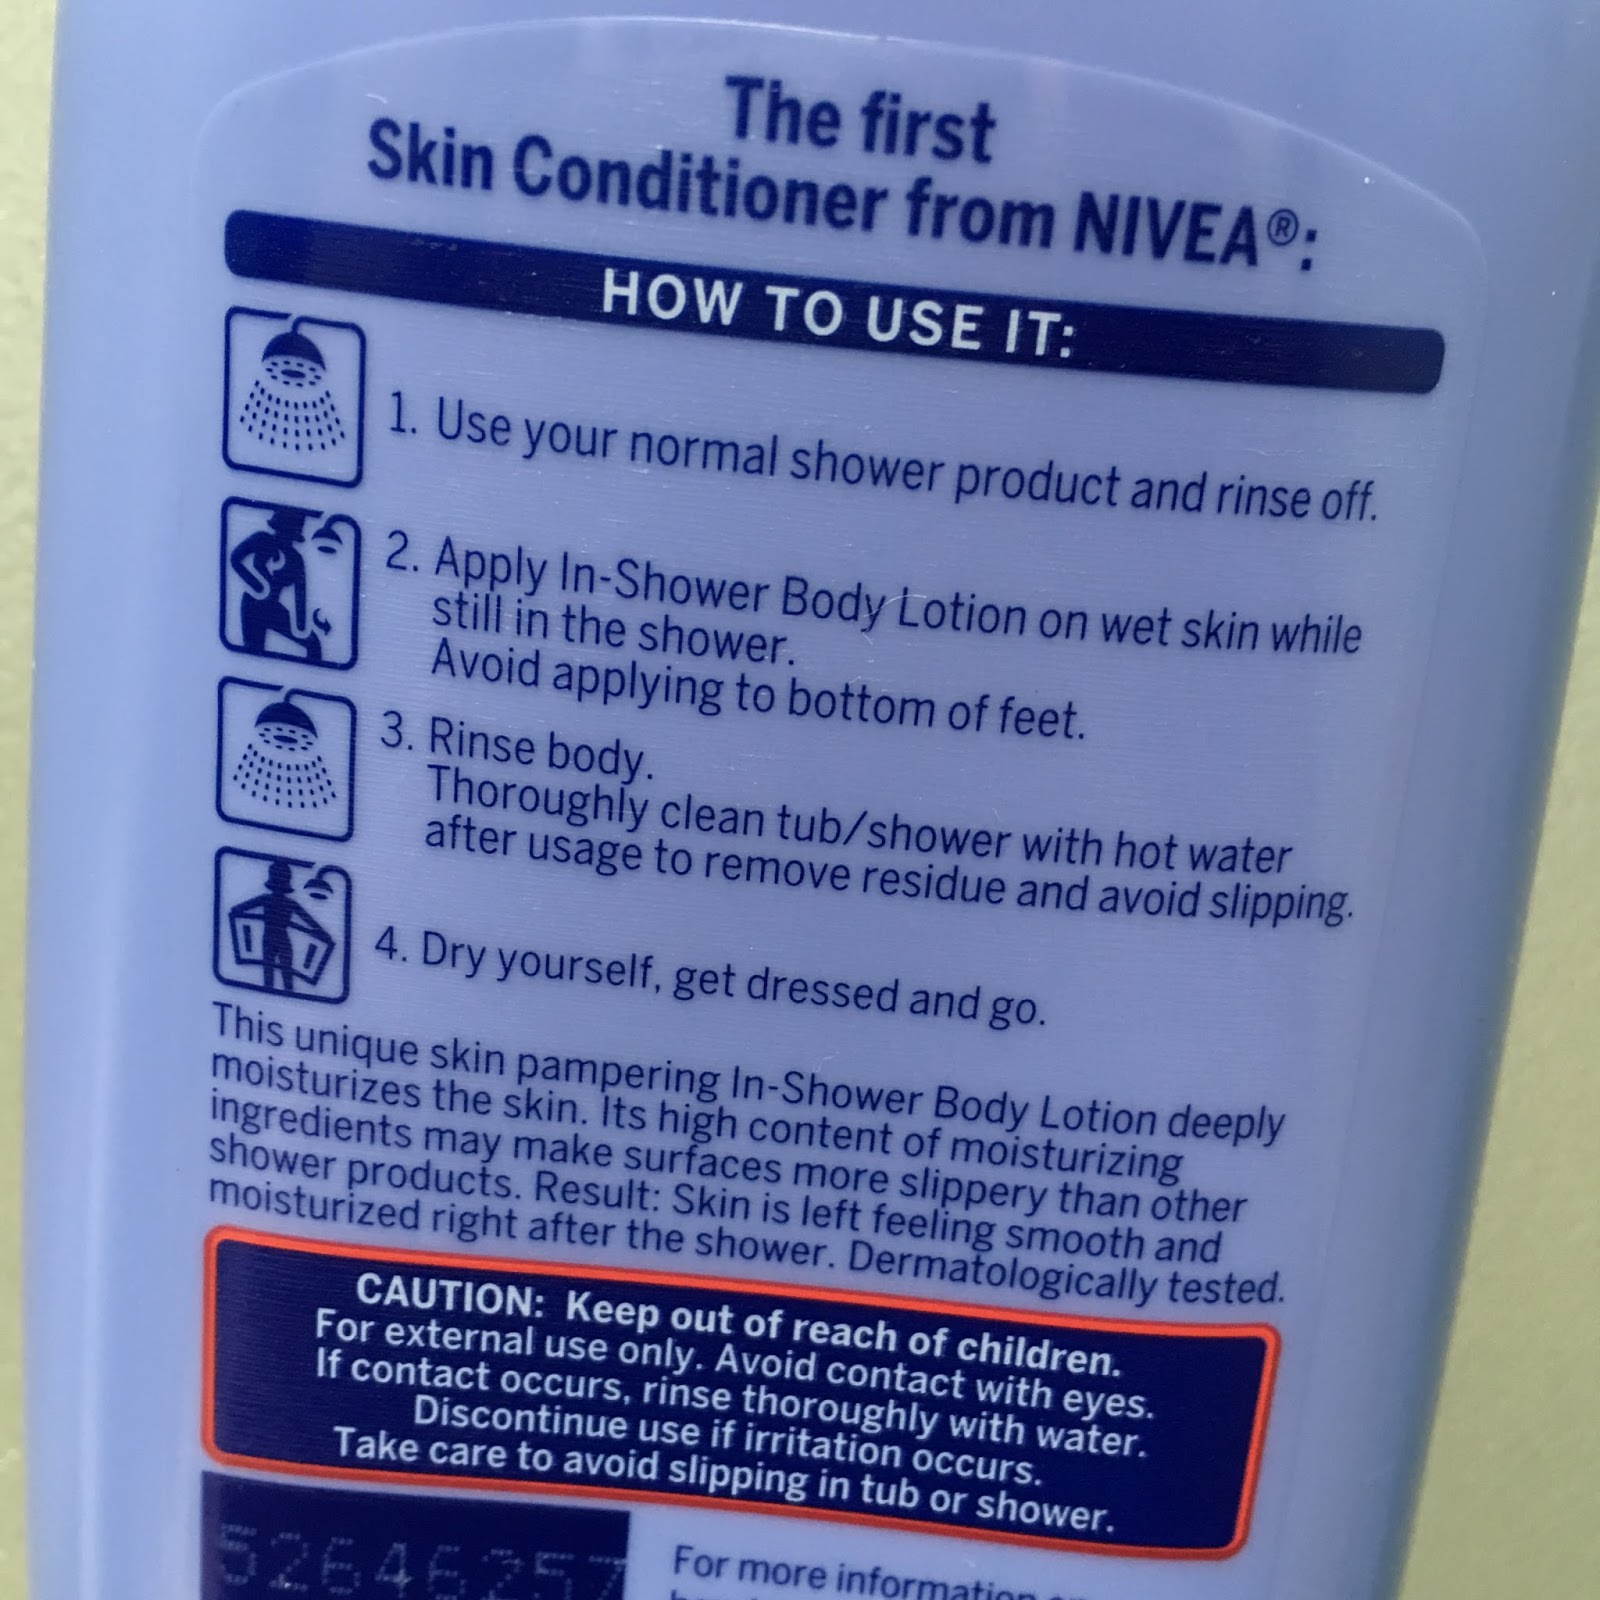 their claims included 24 hours of hydration that leaves skin soft with no sticky feelings thereu0027s no need to apply moisturizer afterwards